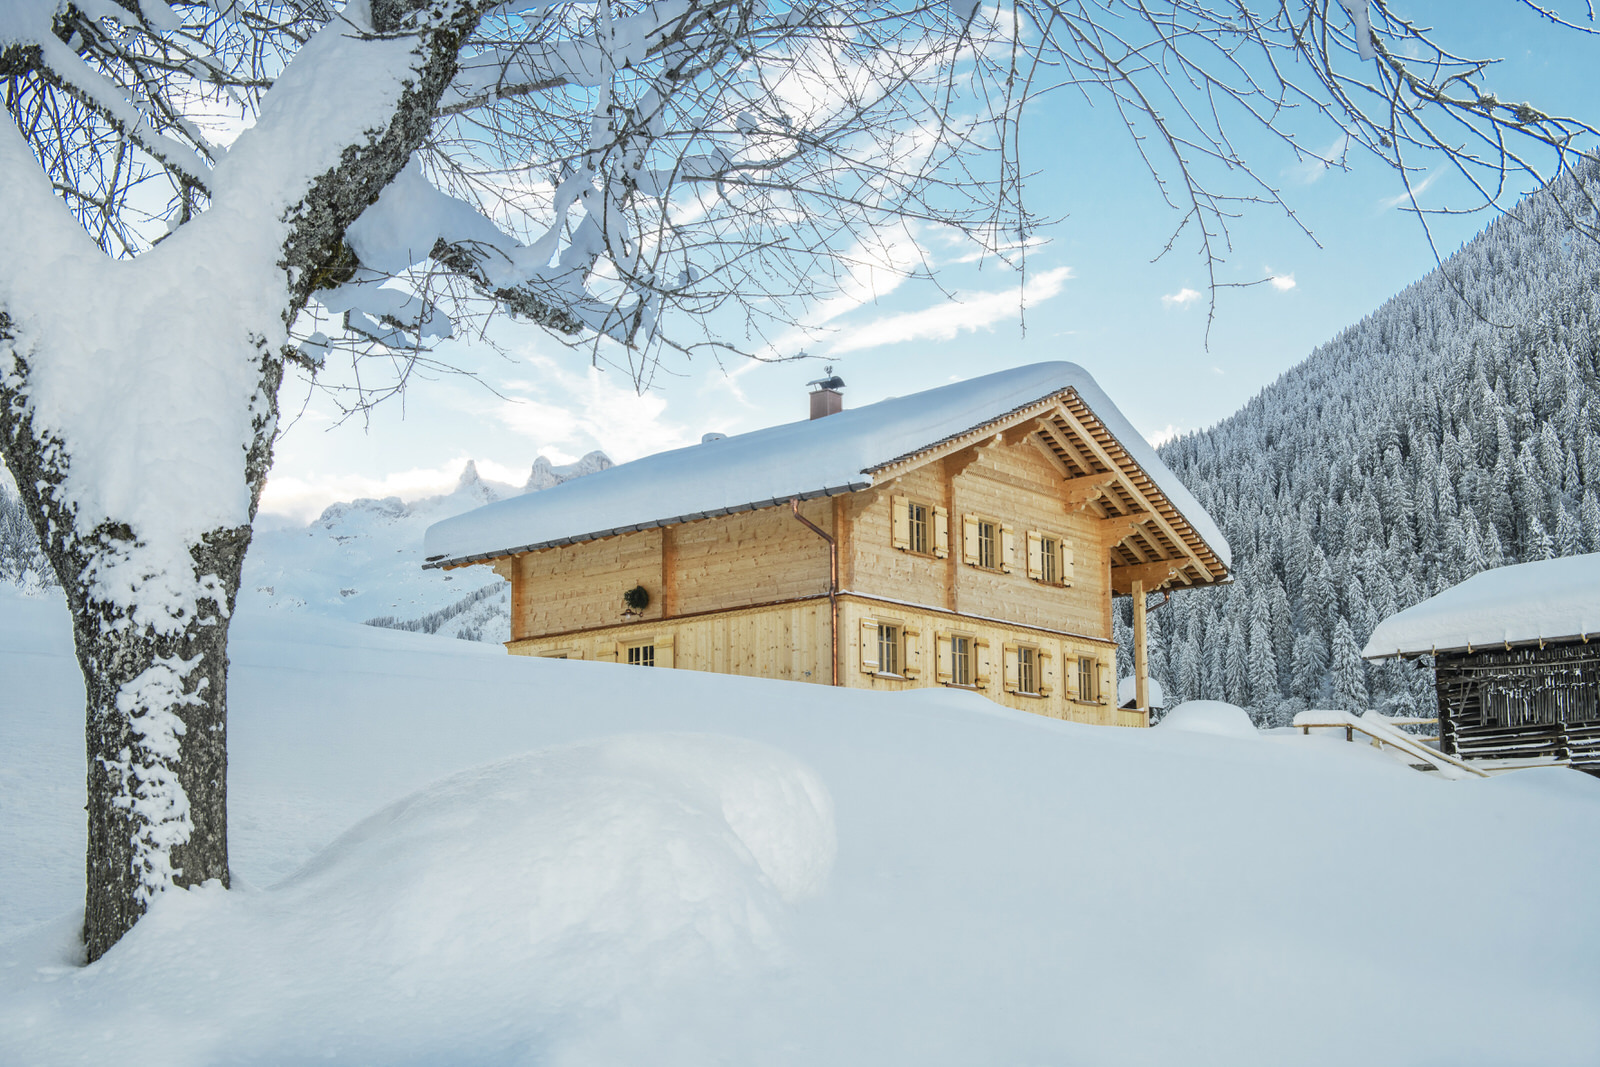 Exclusive mountain lodge Gauertal Montafon - winter